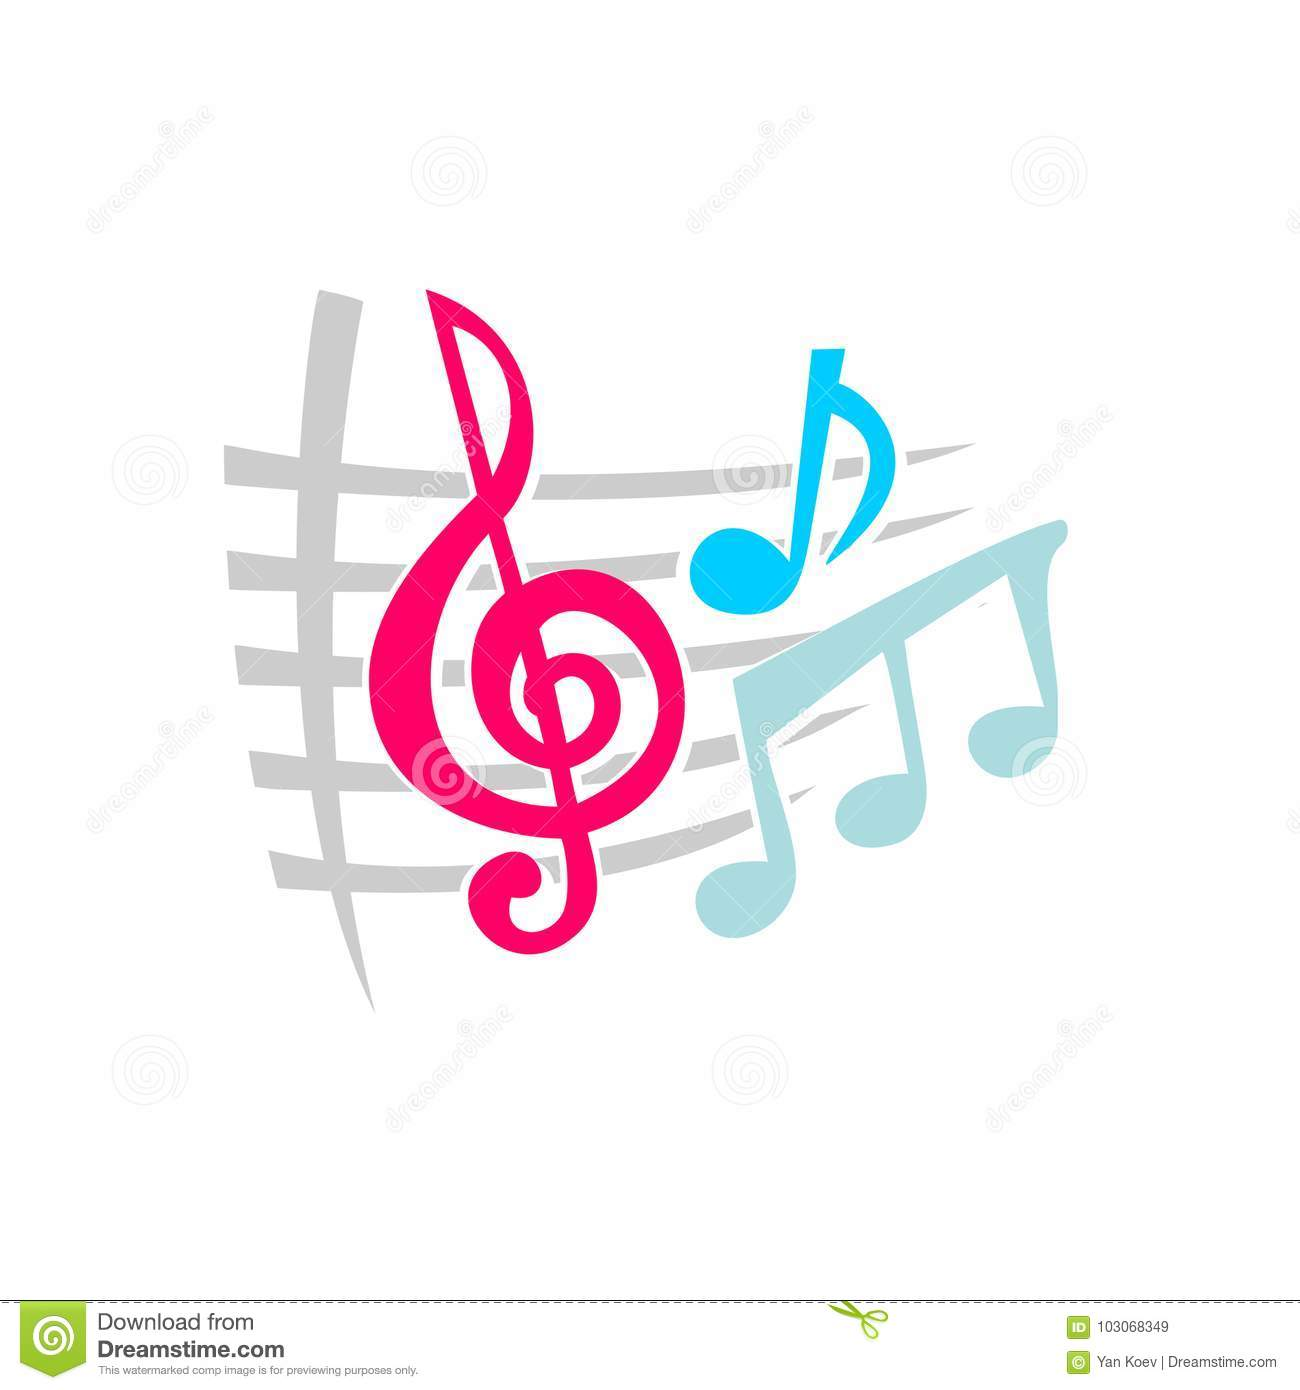 Notes music symbols stock vector  Illustration of notes - 103068349